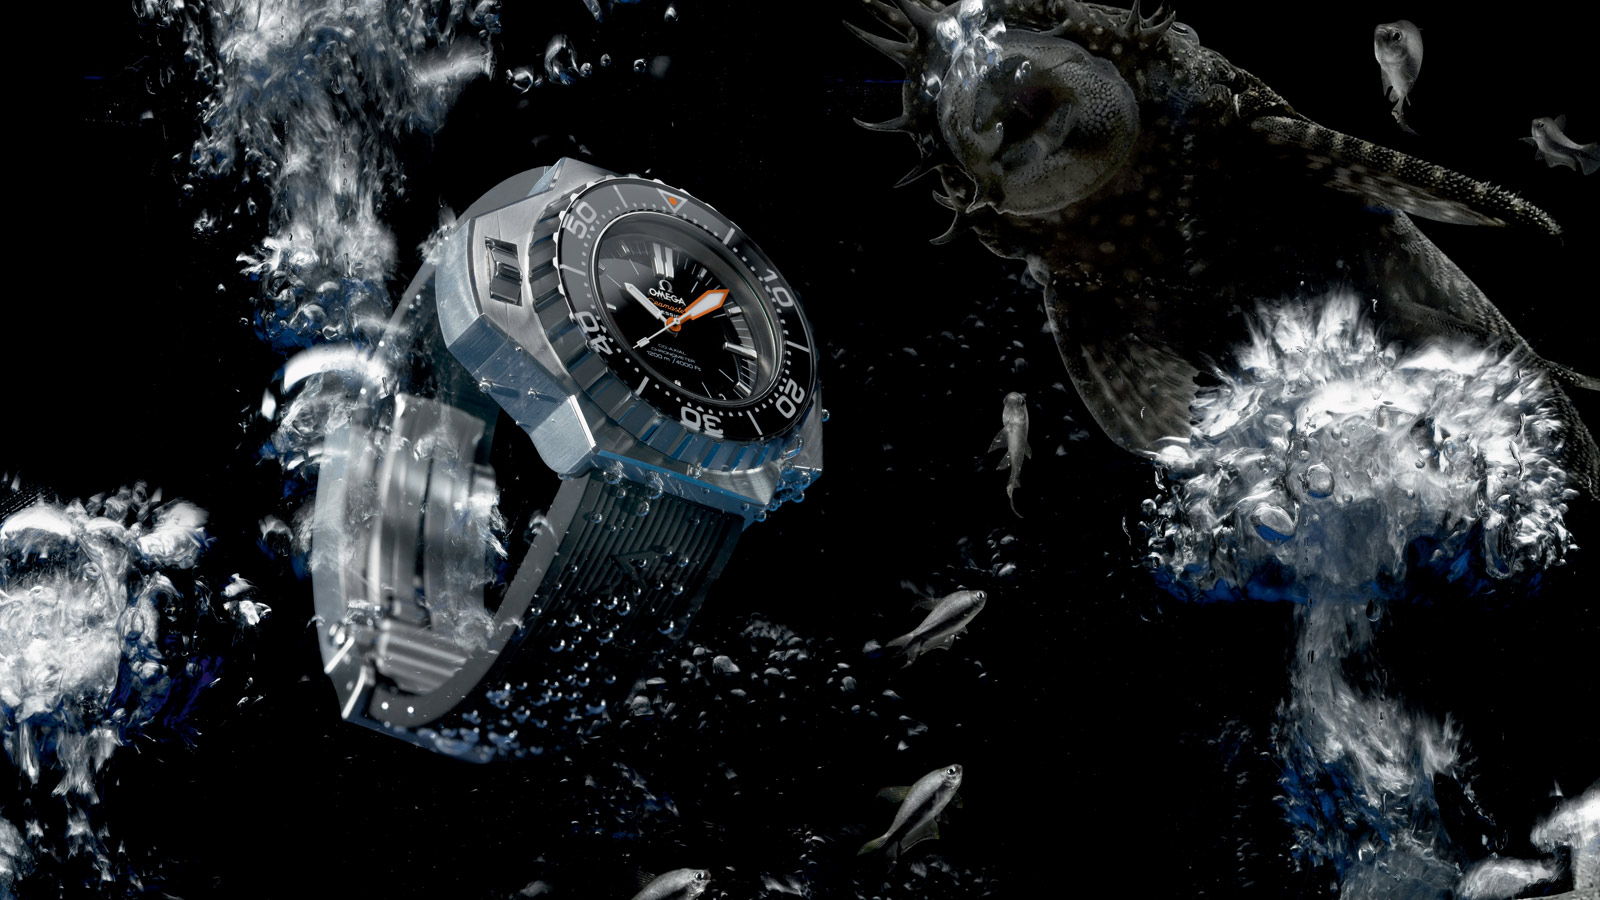 Seamaster PLOPROF 1200M Ploprof 1200M Omega Co‑Axial 55 x 48 mm - 224.32.55.21.01.001 - Ver 1